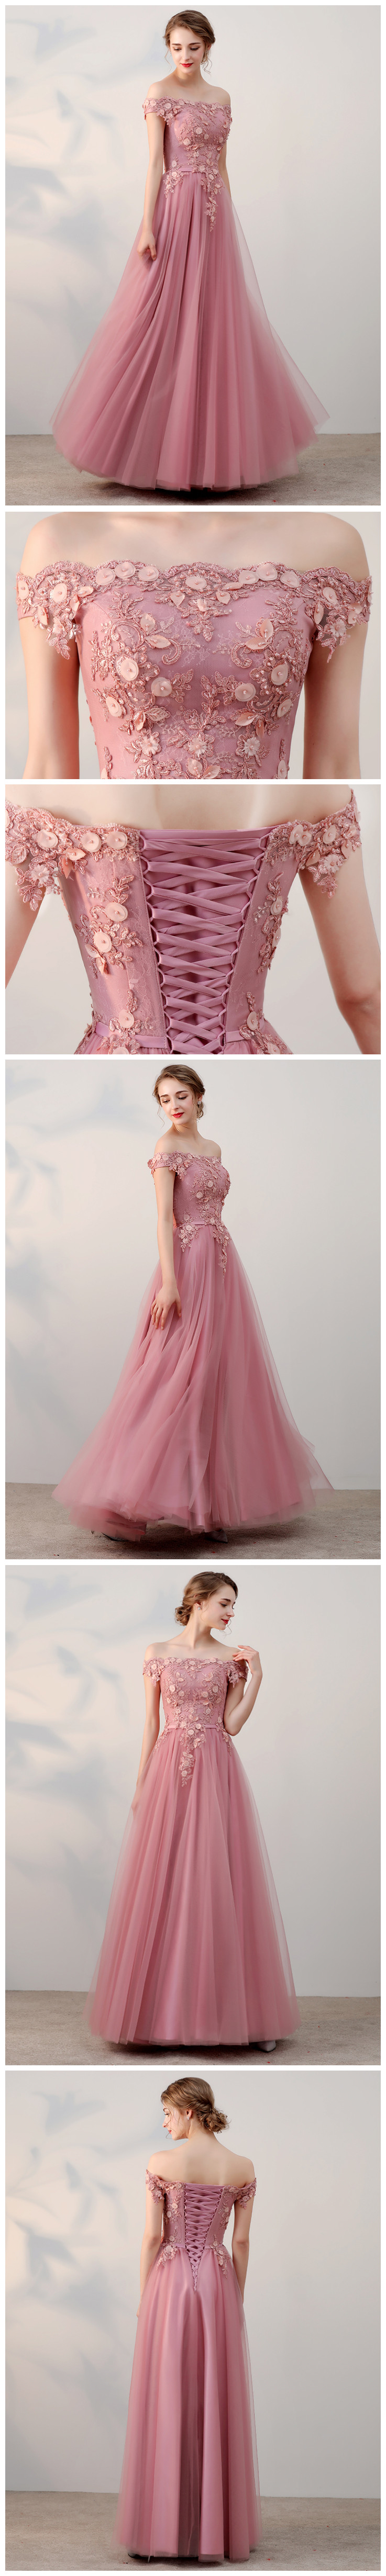 2110c53632ed Chic A-line Off-the-shoulder pink Applique Tulle Modest Long Prom Dress